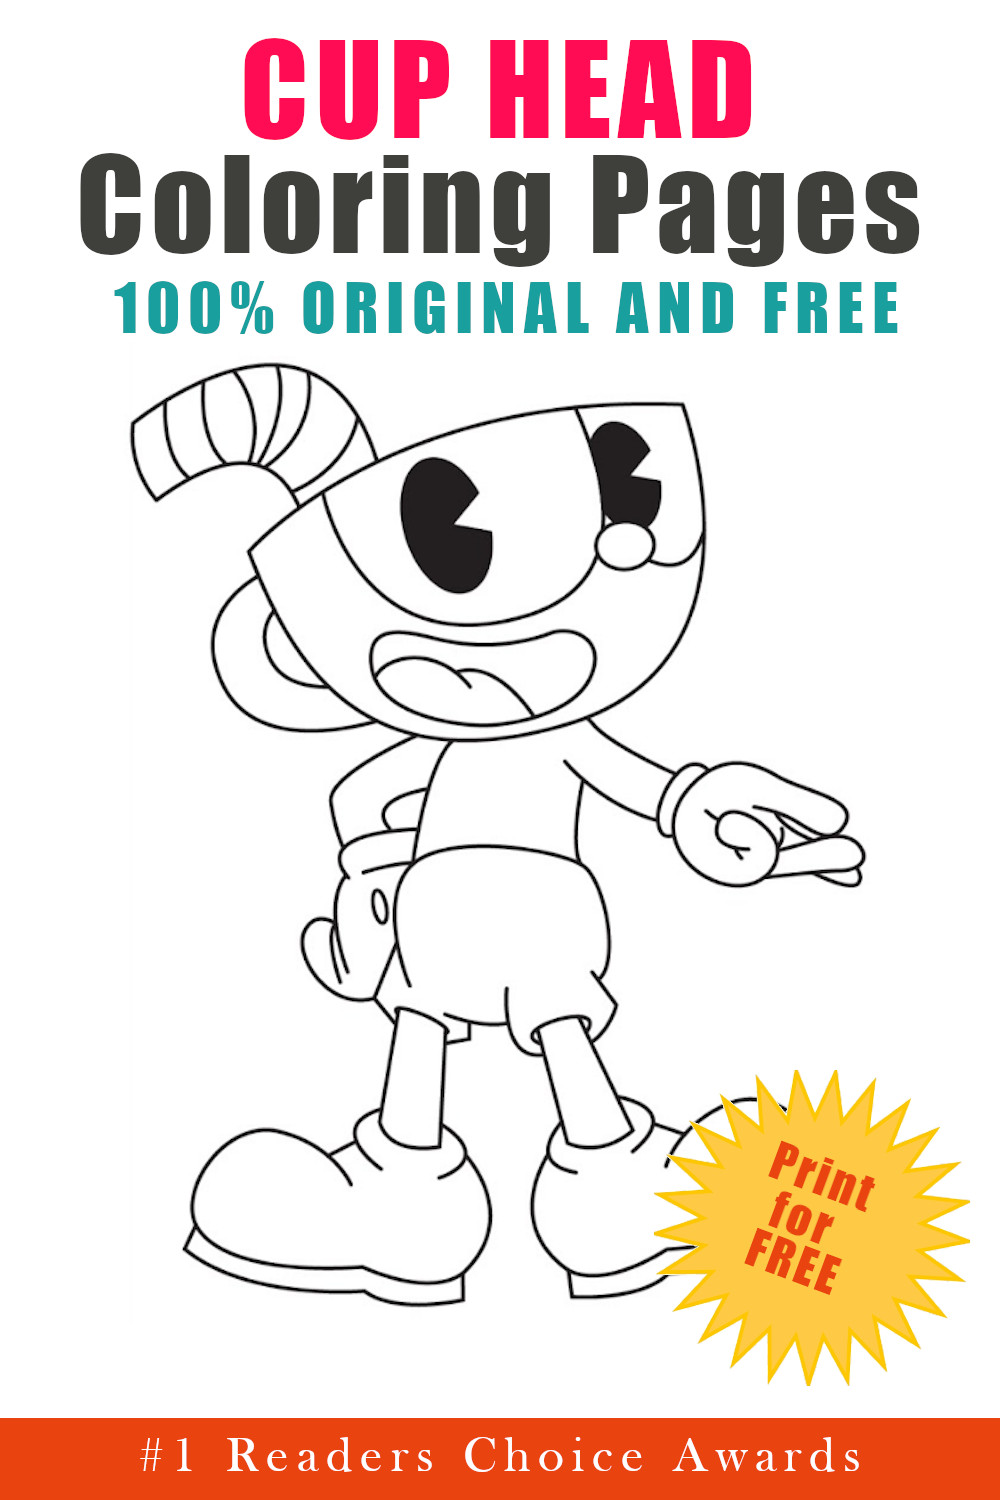 original and free cup head coloring pages